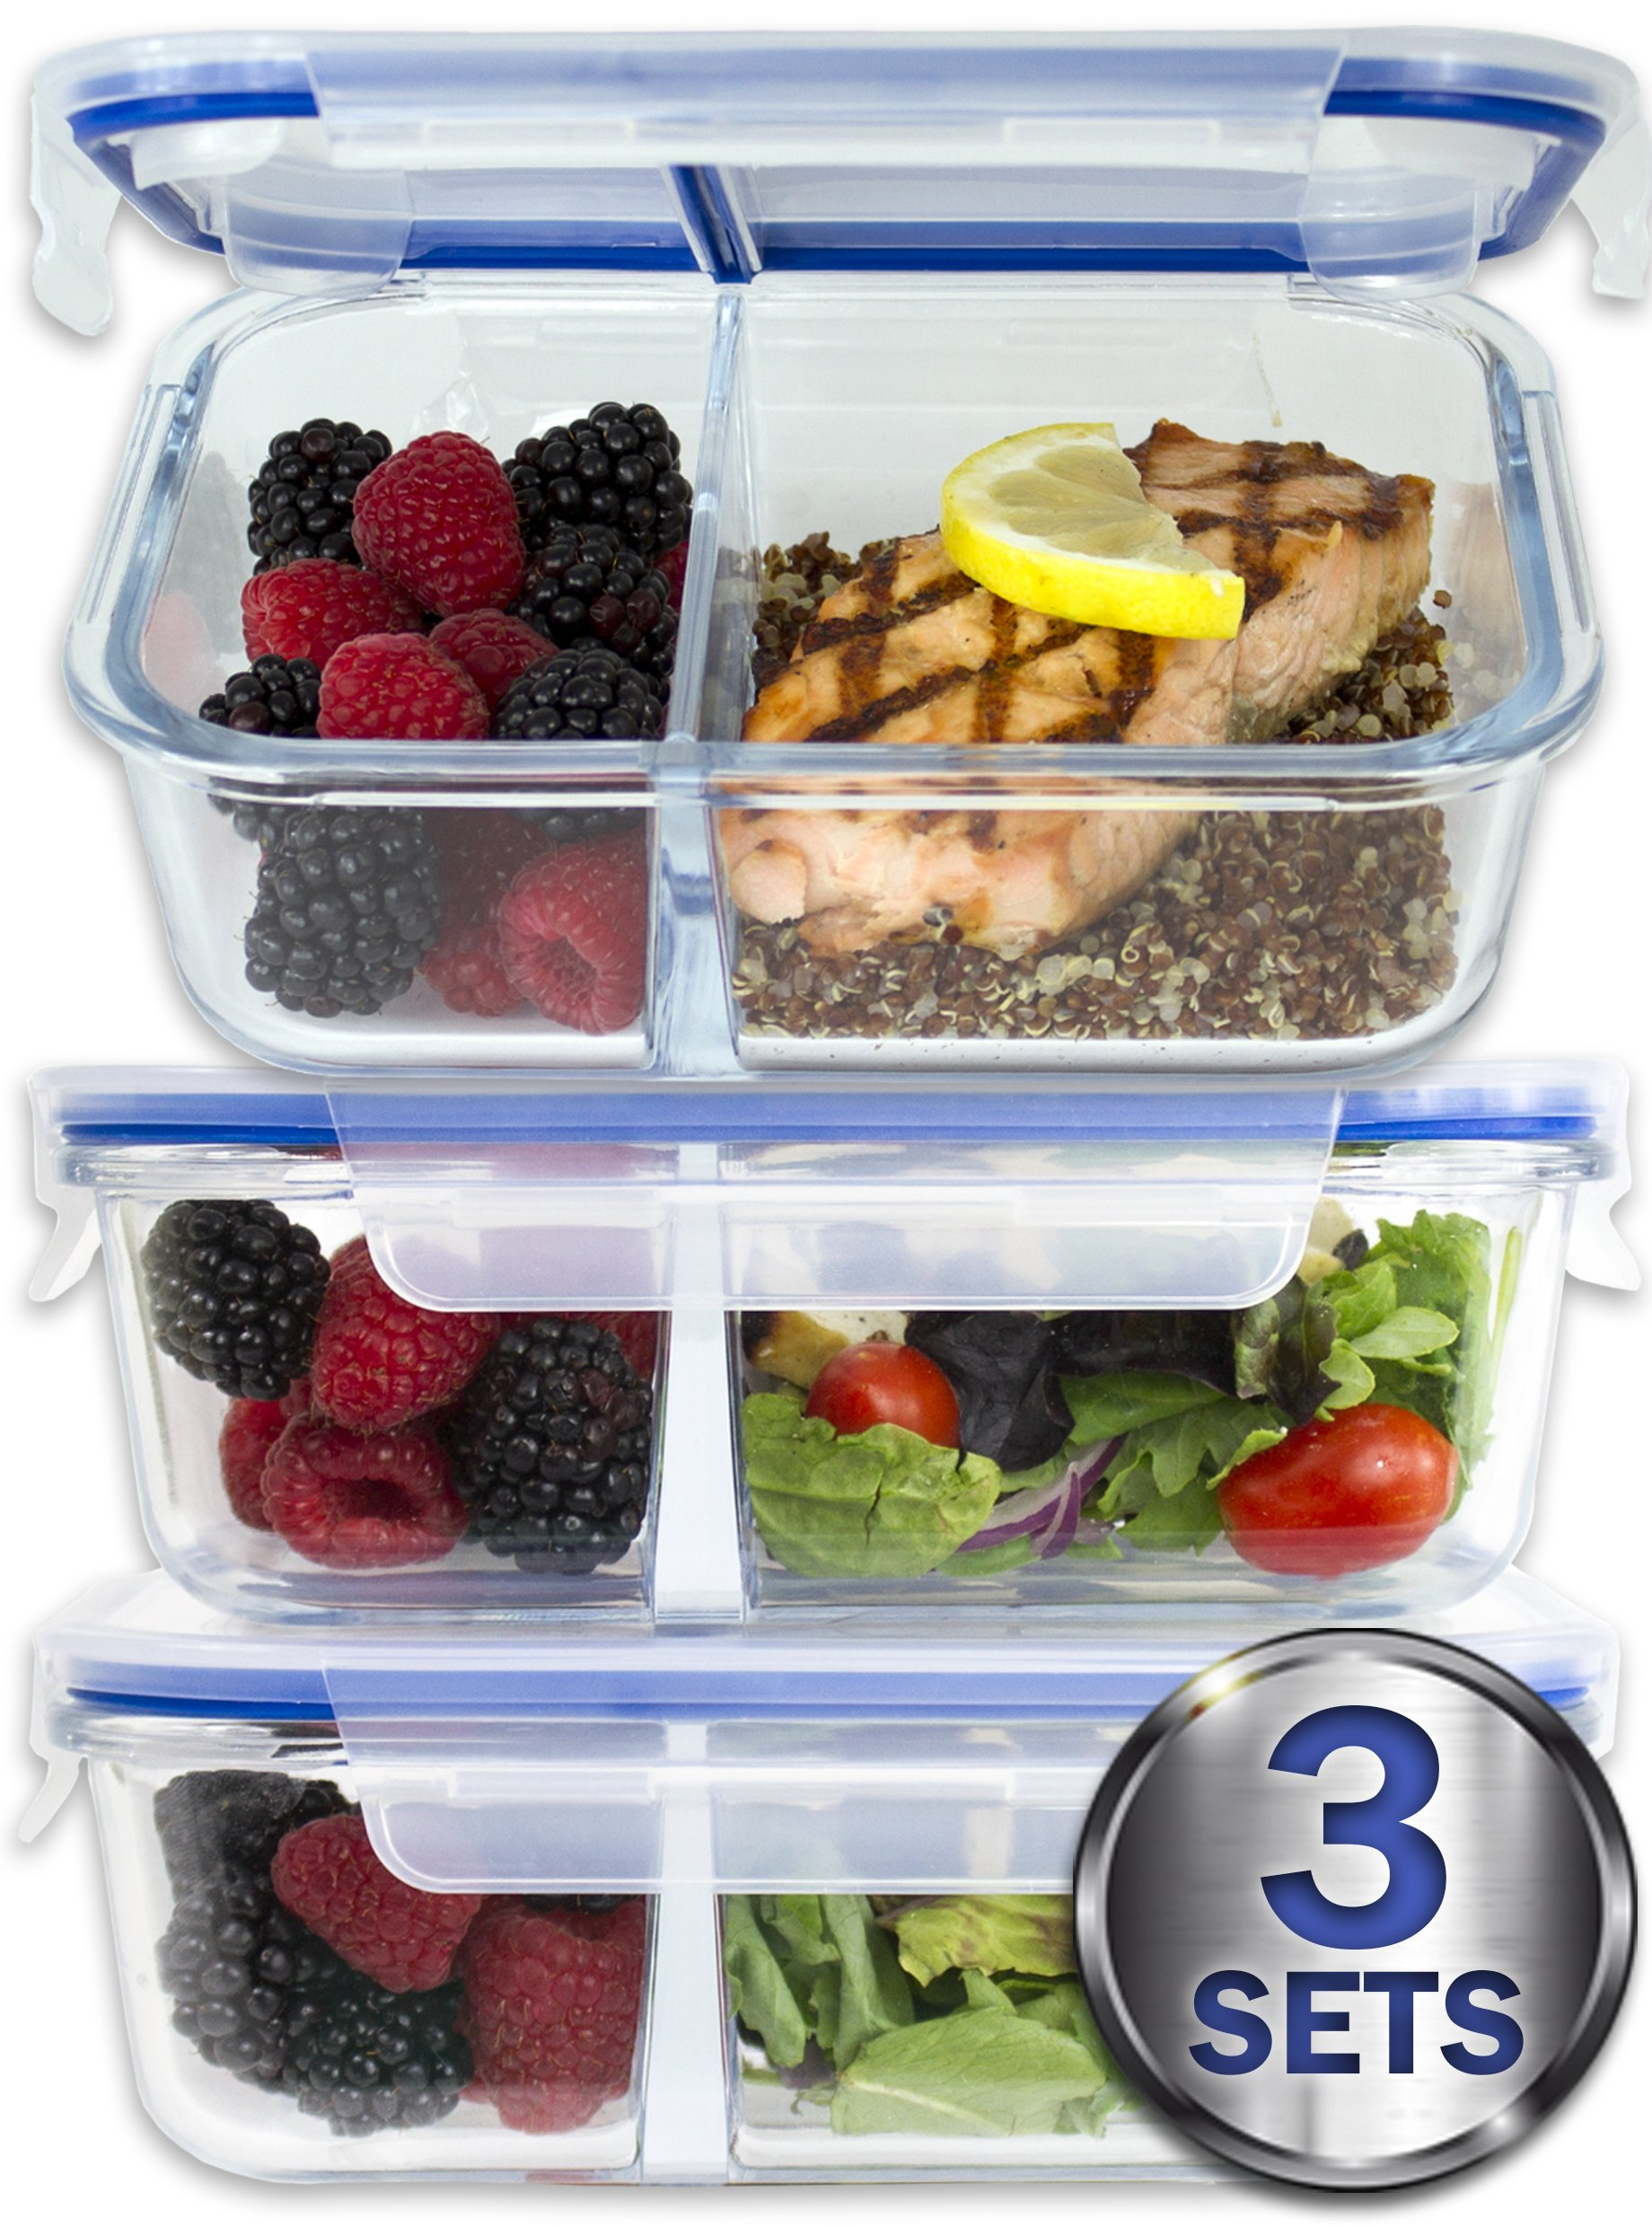 [Large Premium 3 Pack] 2 Compartment Glass Meal Prep Containers w/New Divider Seal Tech Best Quality Snap Locking Lids Airtight 8 Pcs Glass Set BPA-Free (5 Cups, 36 Oz) by Misc Home